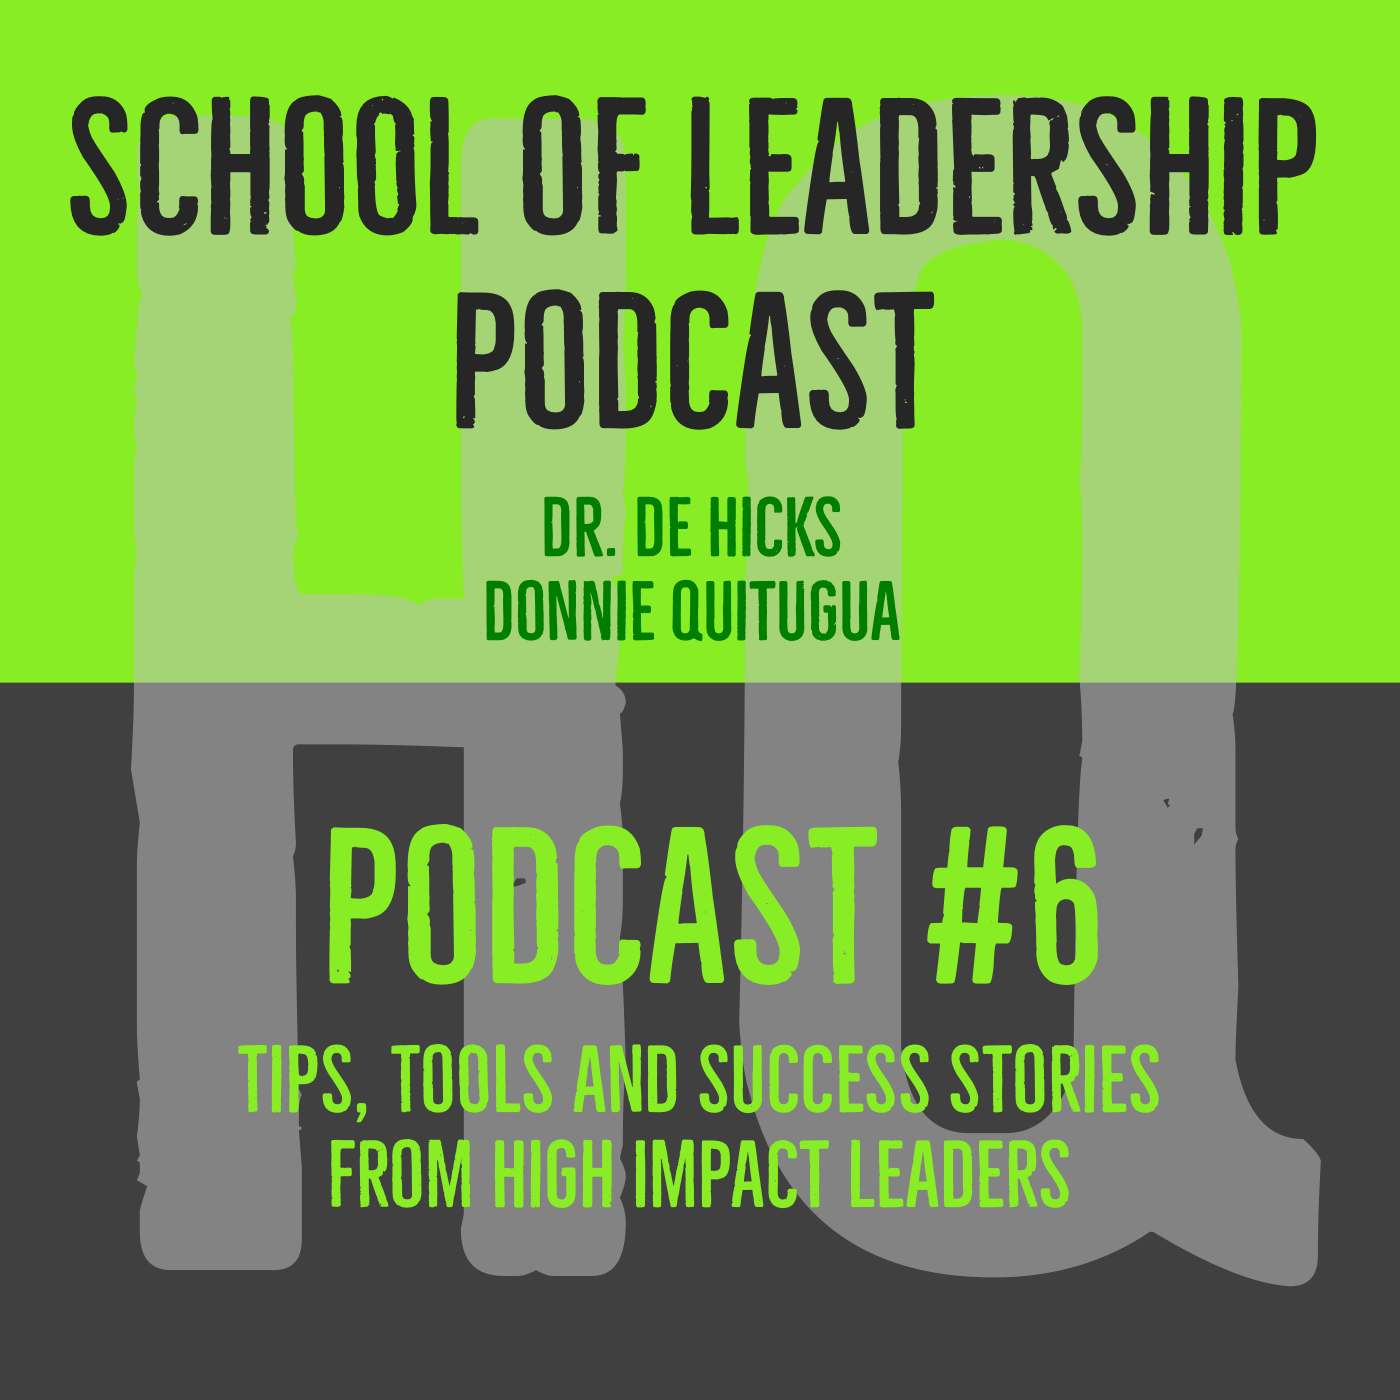 HQ School of Leadership   Episode 6  Dr. De Hicks talks about creating an Intentional Culture at Work